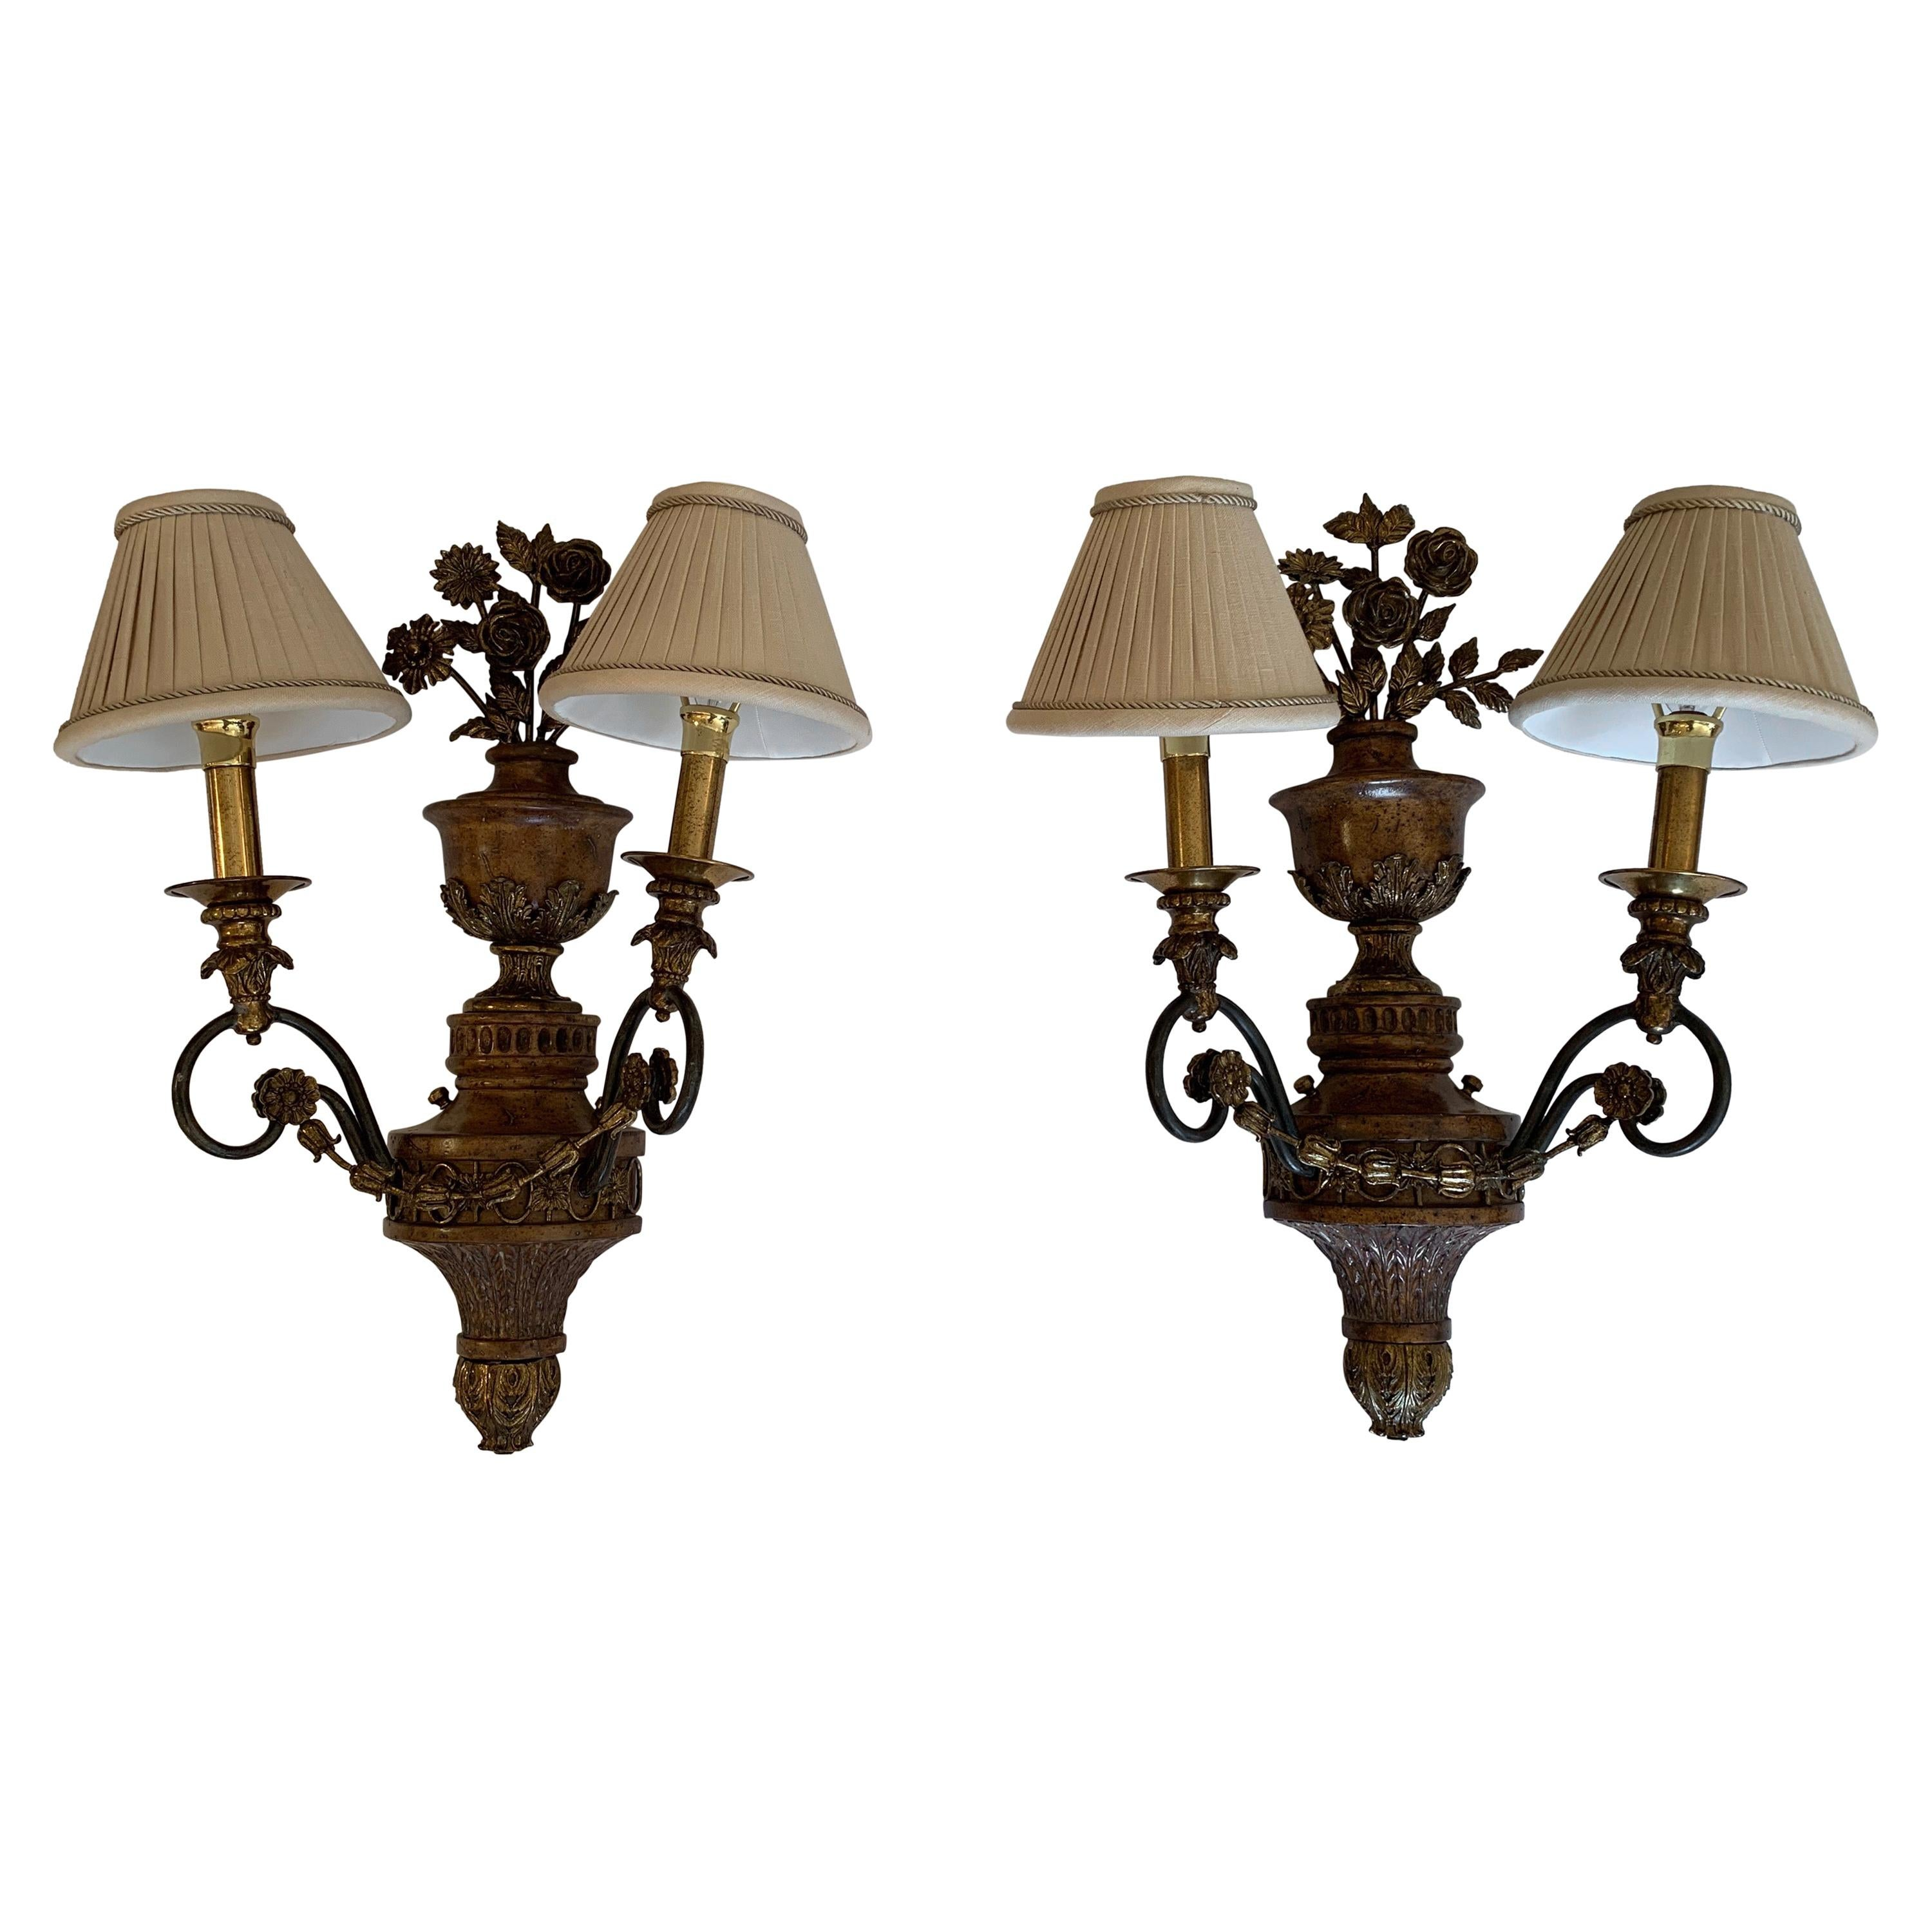 Pair of Large Maitland Smith Ornate Floral Motife Brass Sconces